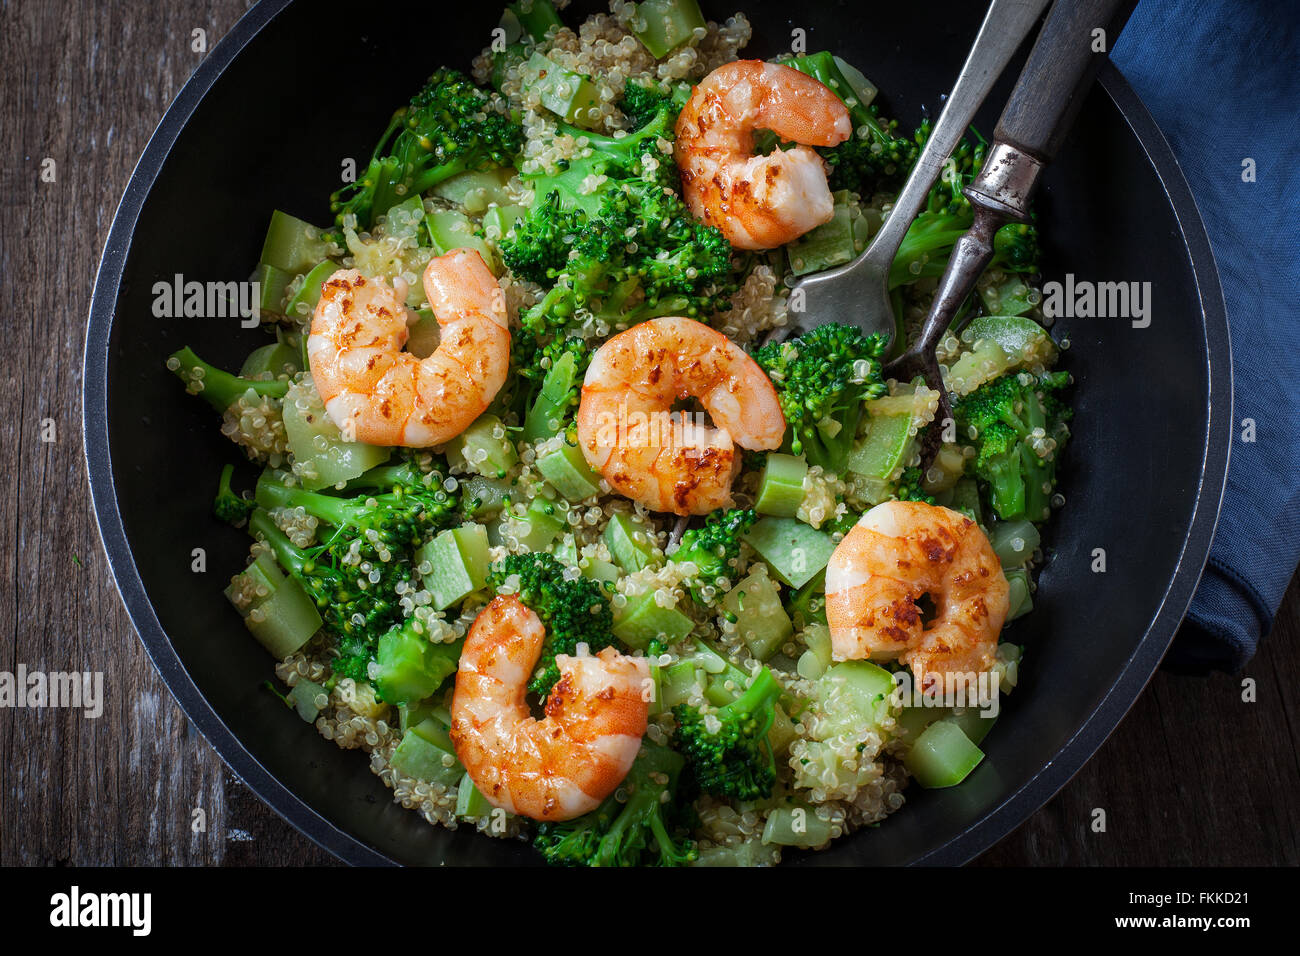 roasted garlic broccoli quinoa salad with prawns on pan - Stock Image